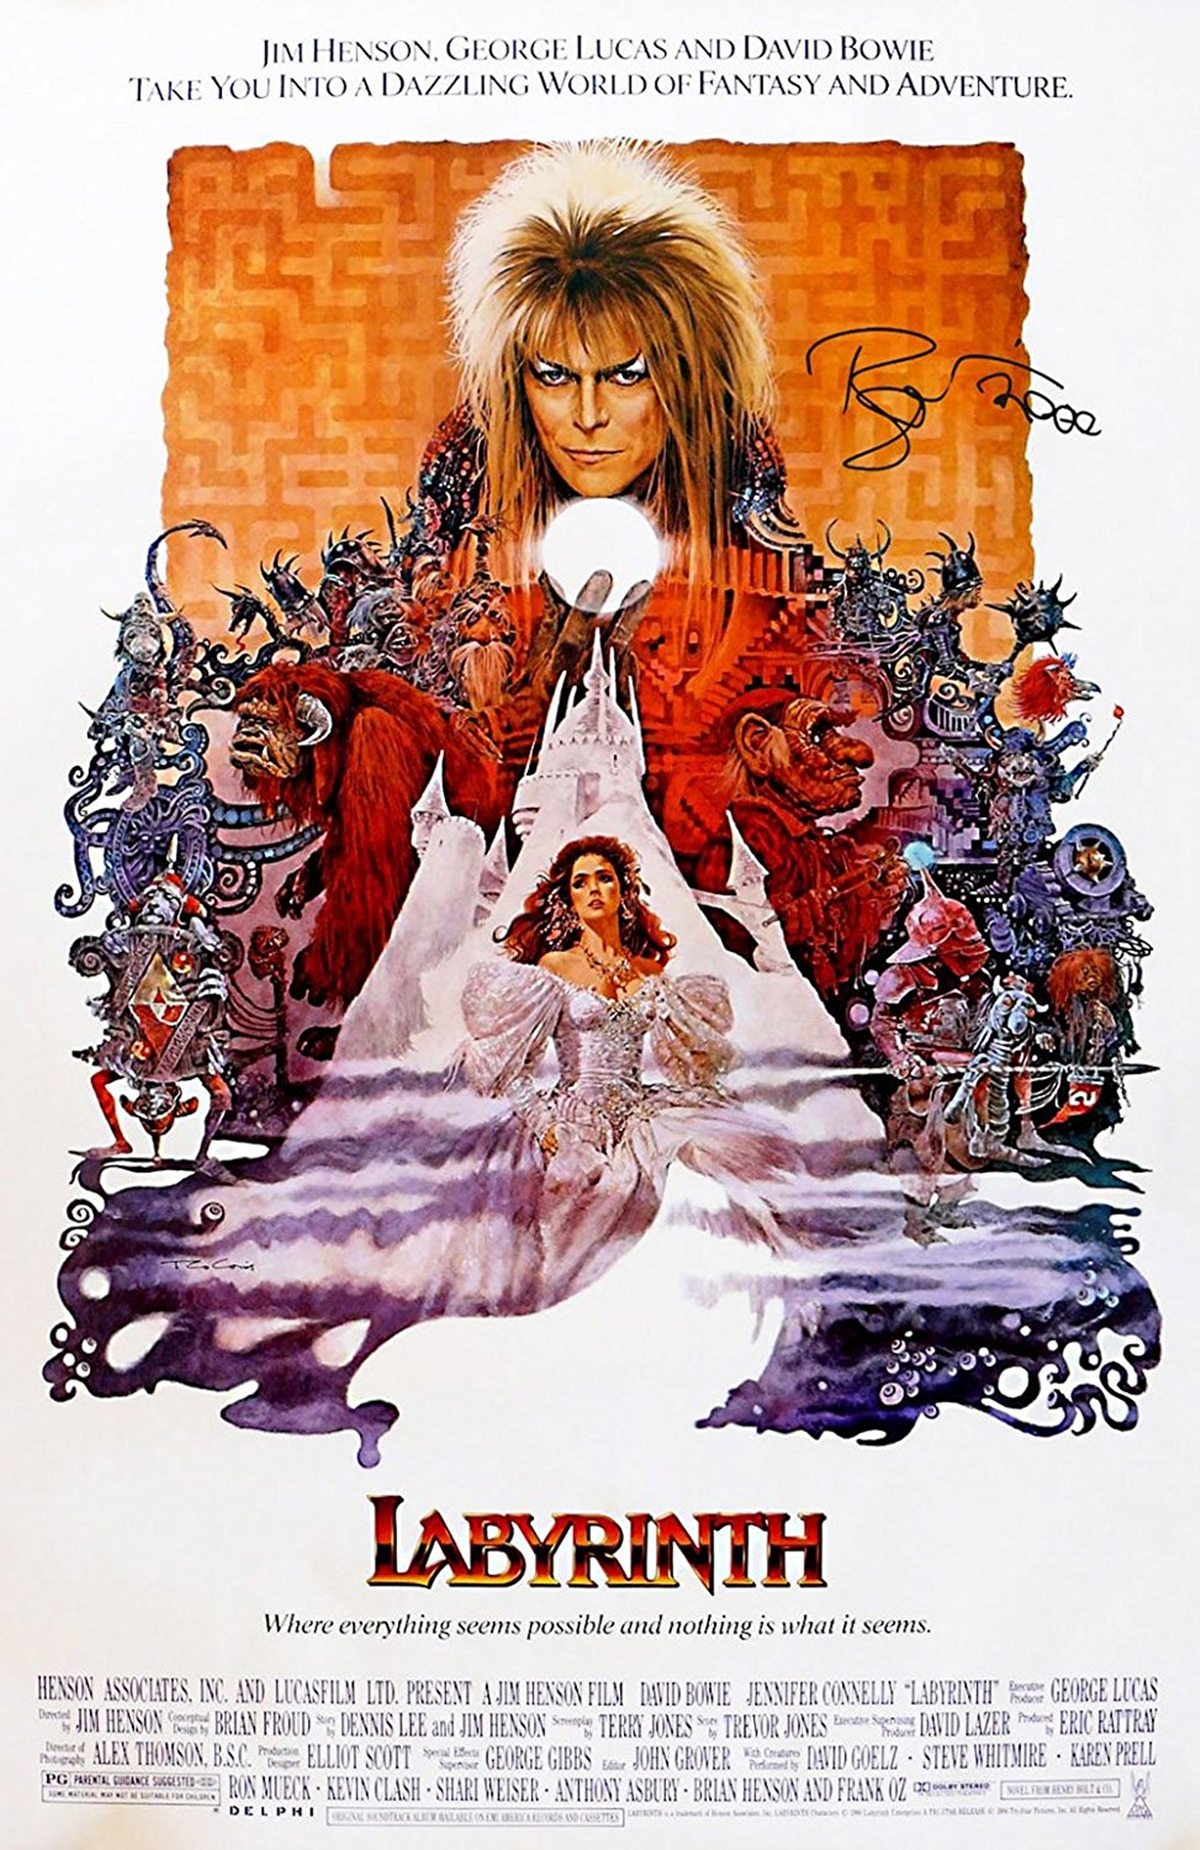 2 24 18 Things You Probably Didn't Know About Labyrinth